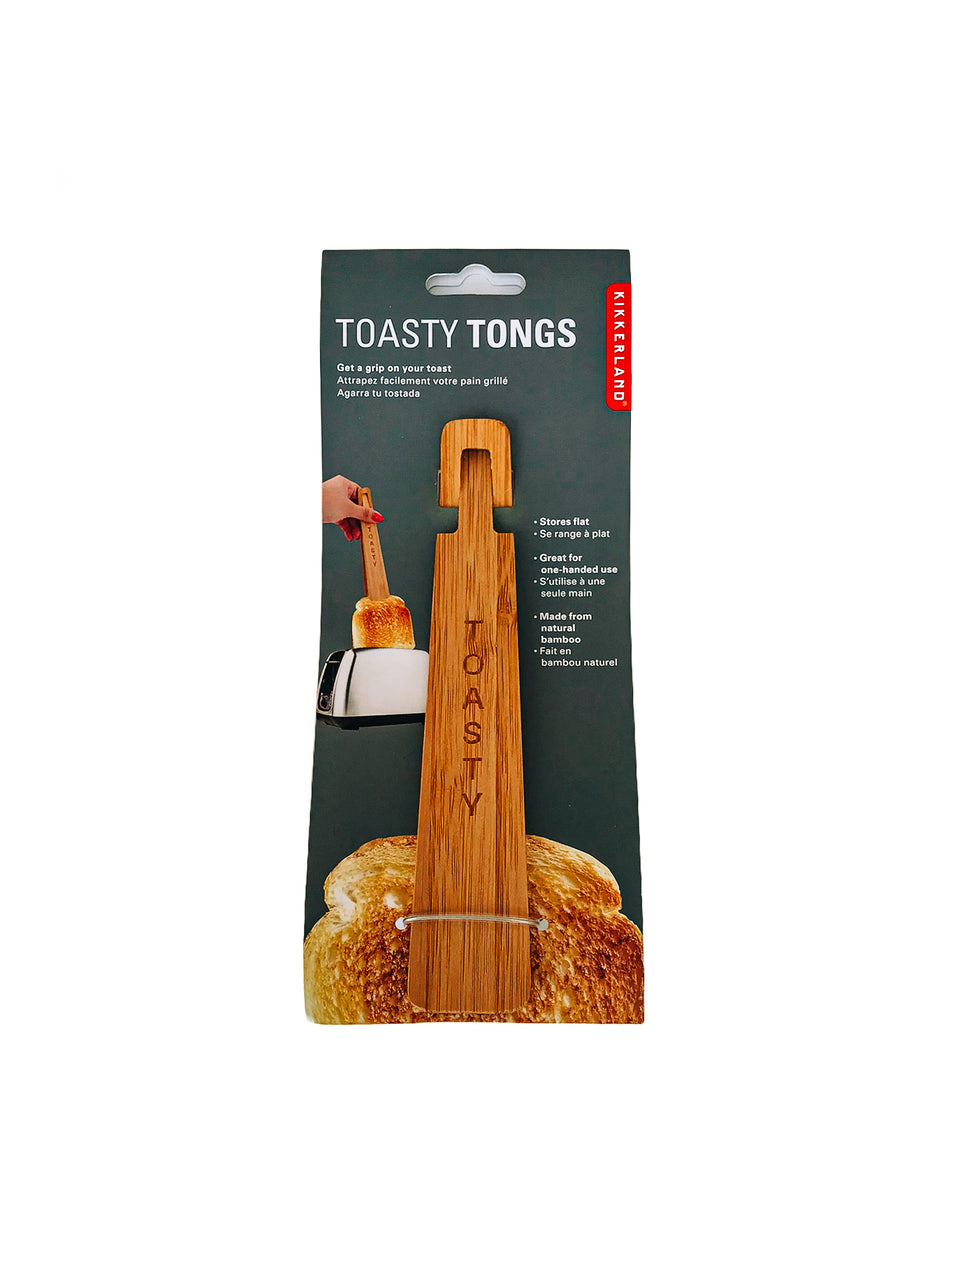 Toasty Tongs